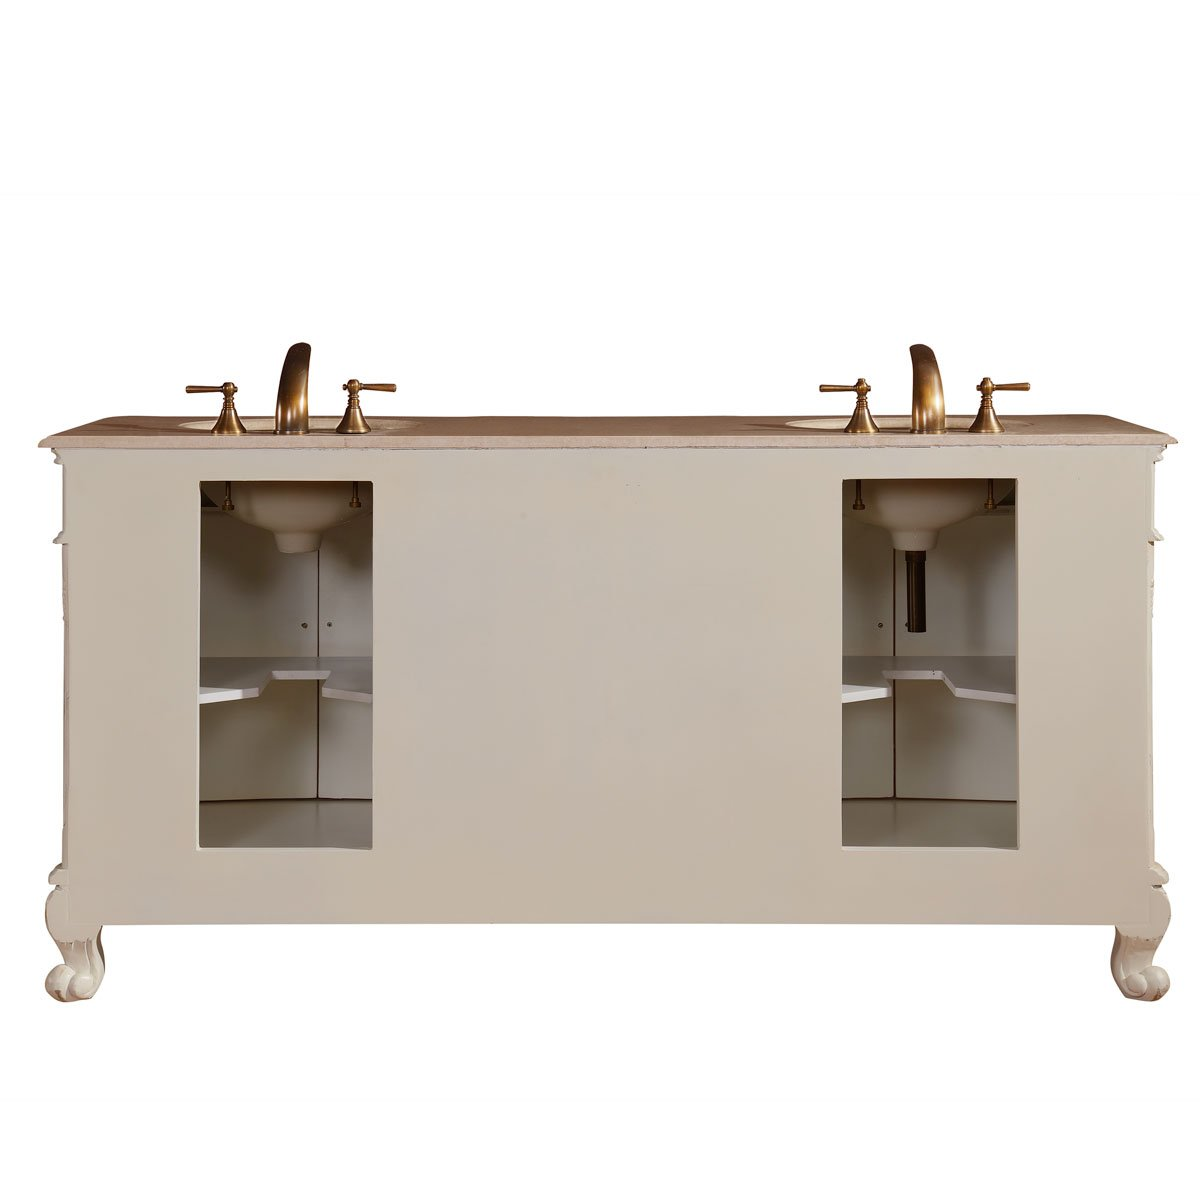 Silkroad Exclusive Countertop Marble Stone Double Sink Bathroom Vanity with Cabinet, 72-Inch by Silkroad Exclusive (Image #6)